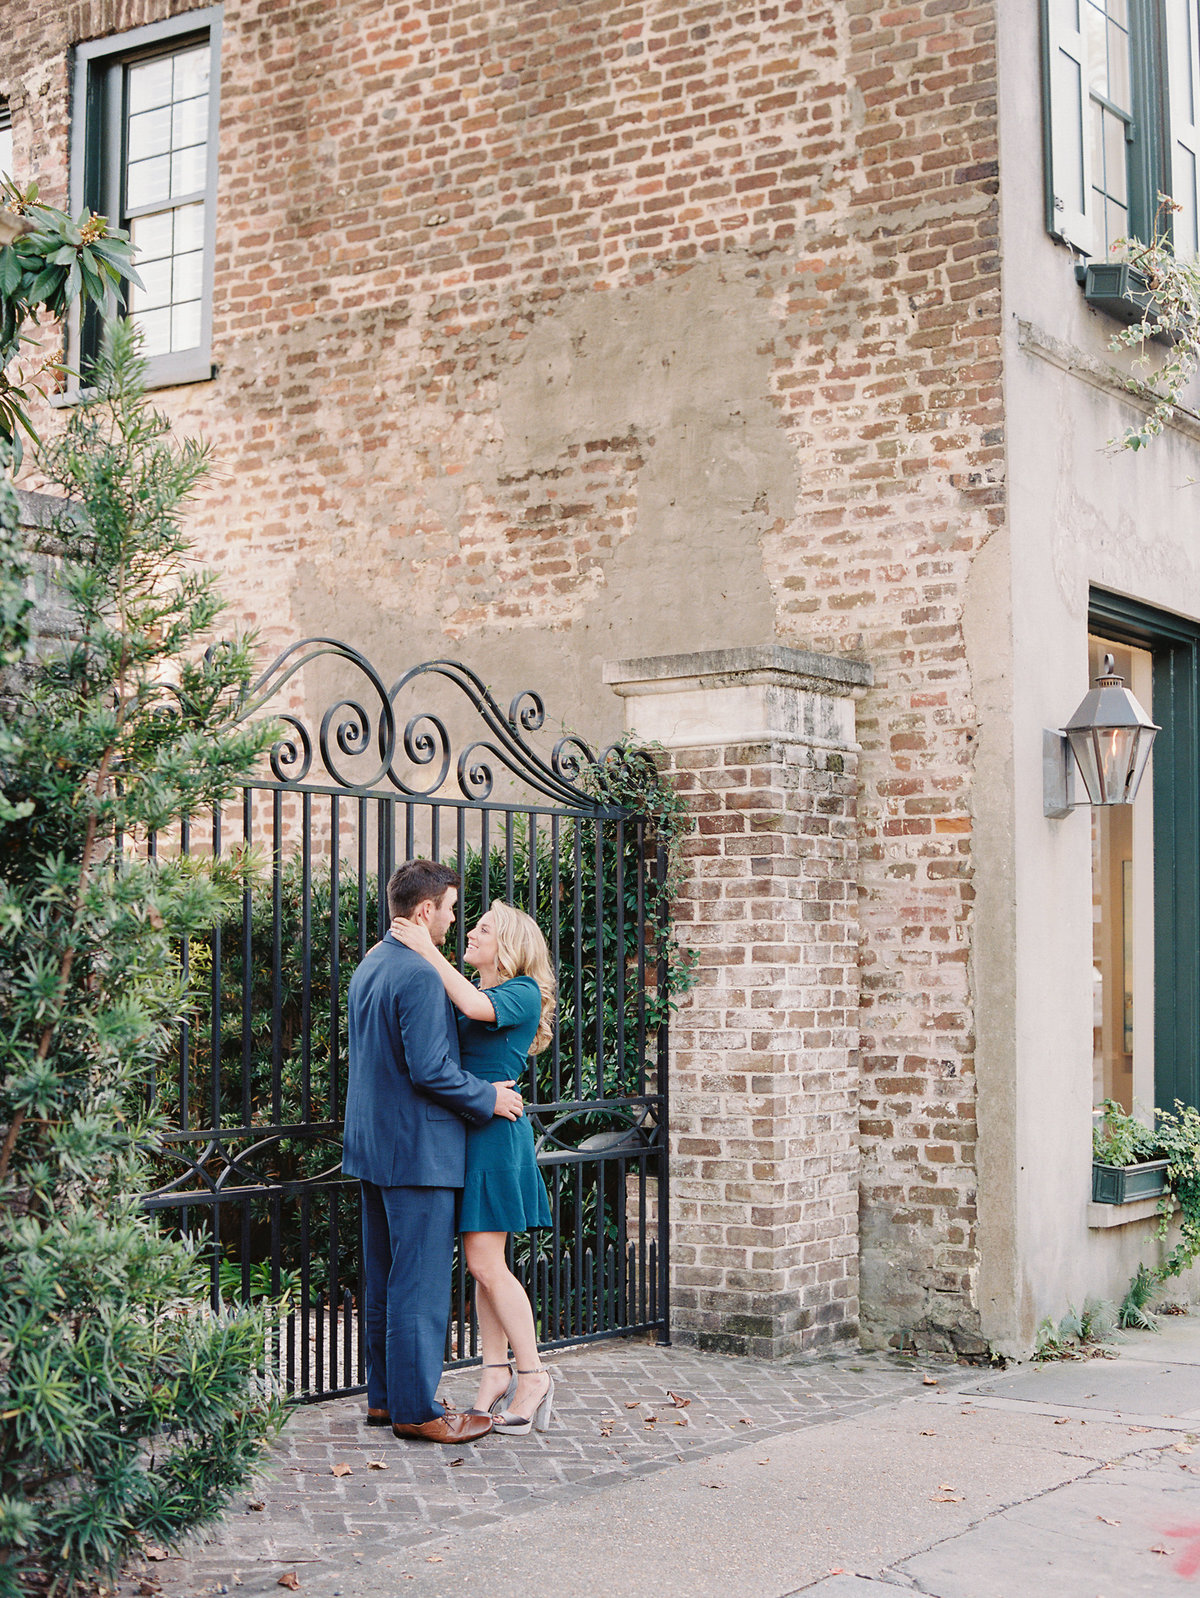 Walterboro-Beaufort-Downtown-Charleston-Engagement-17